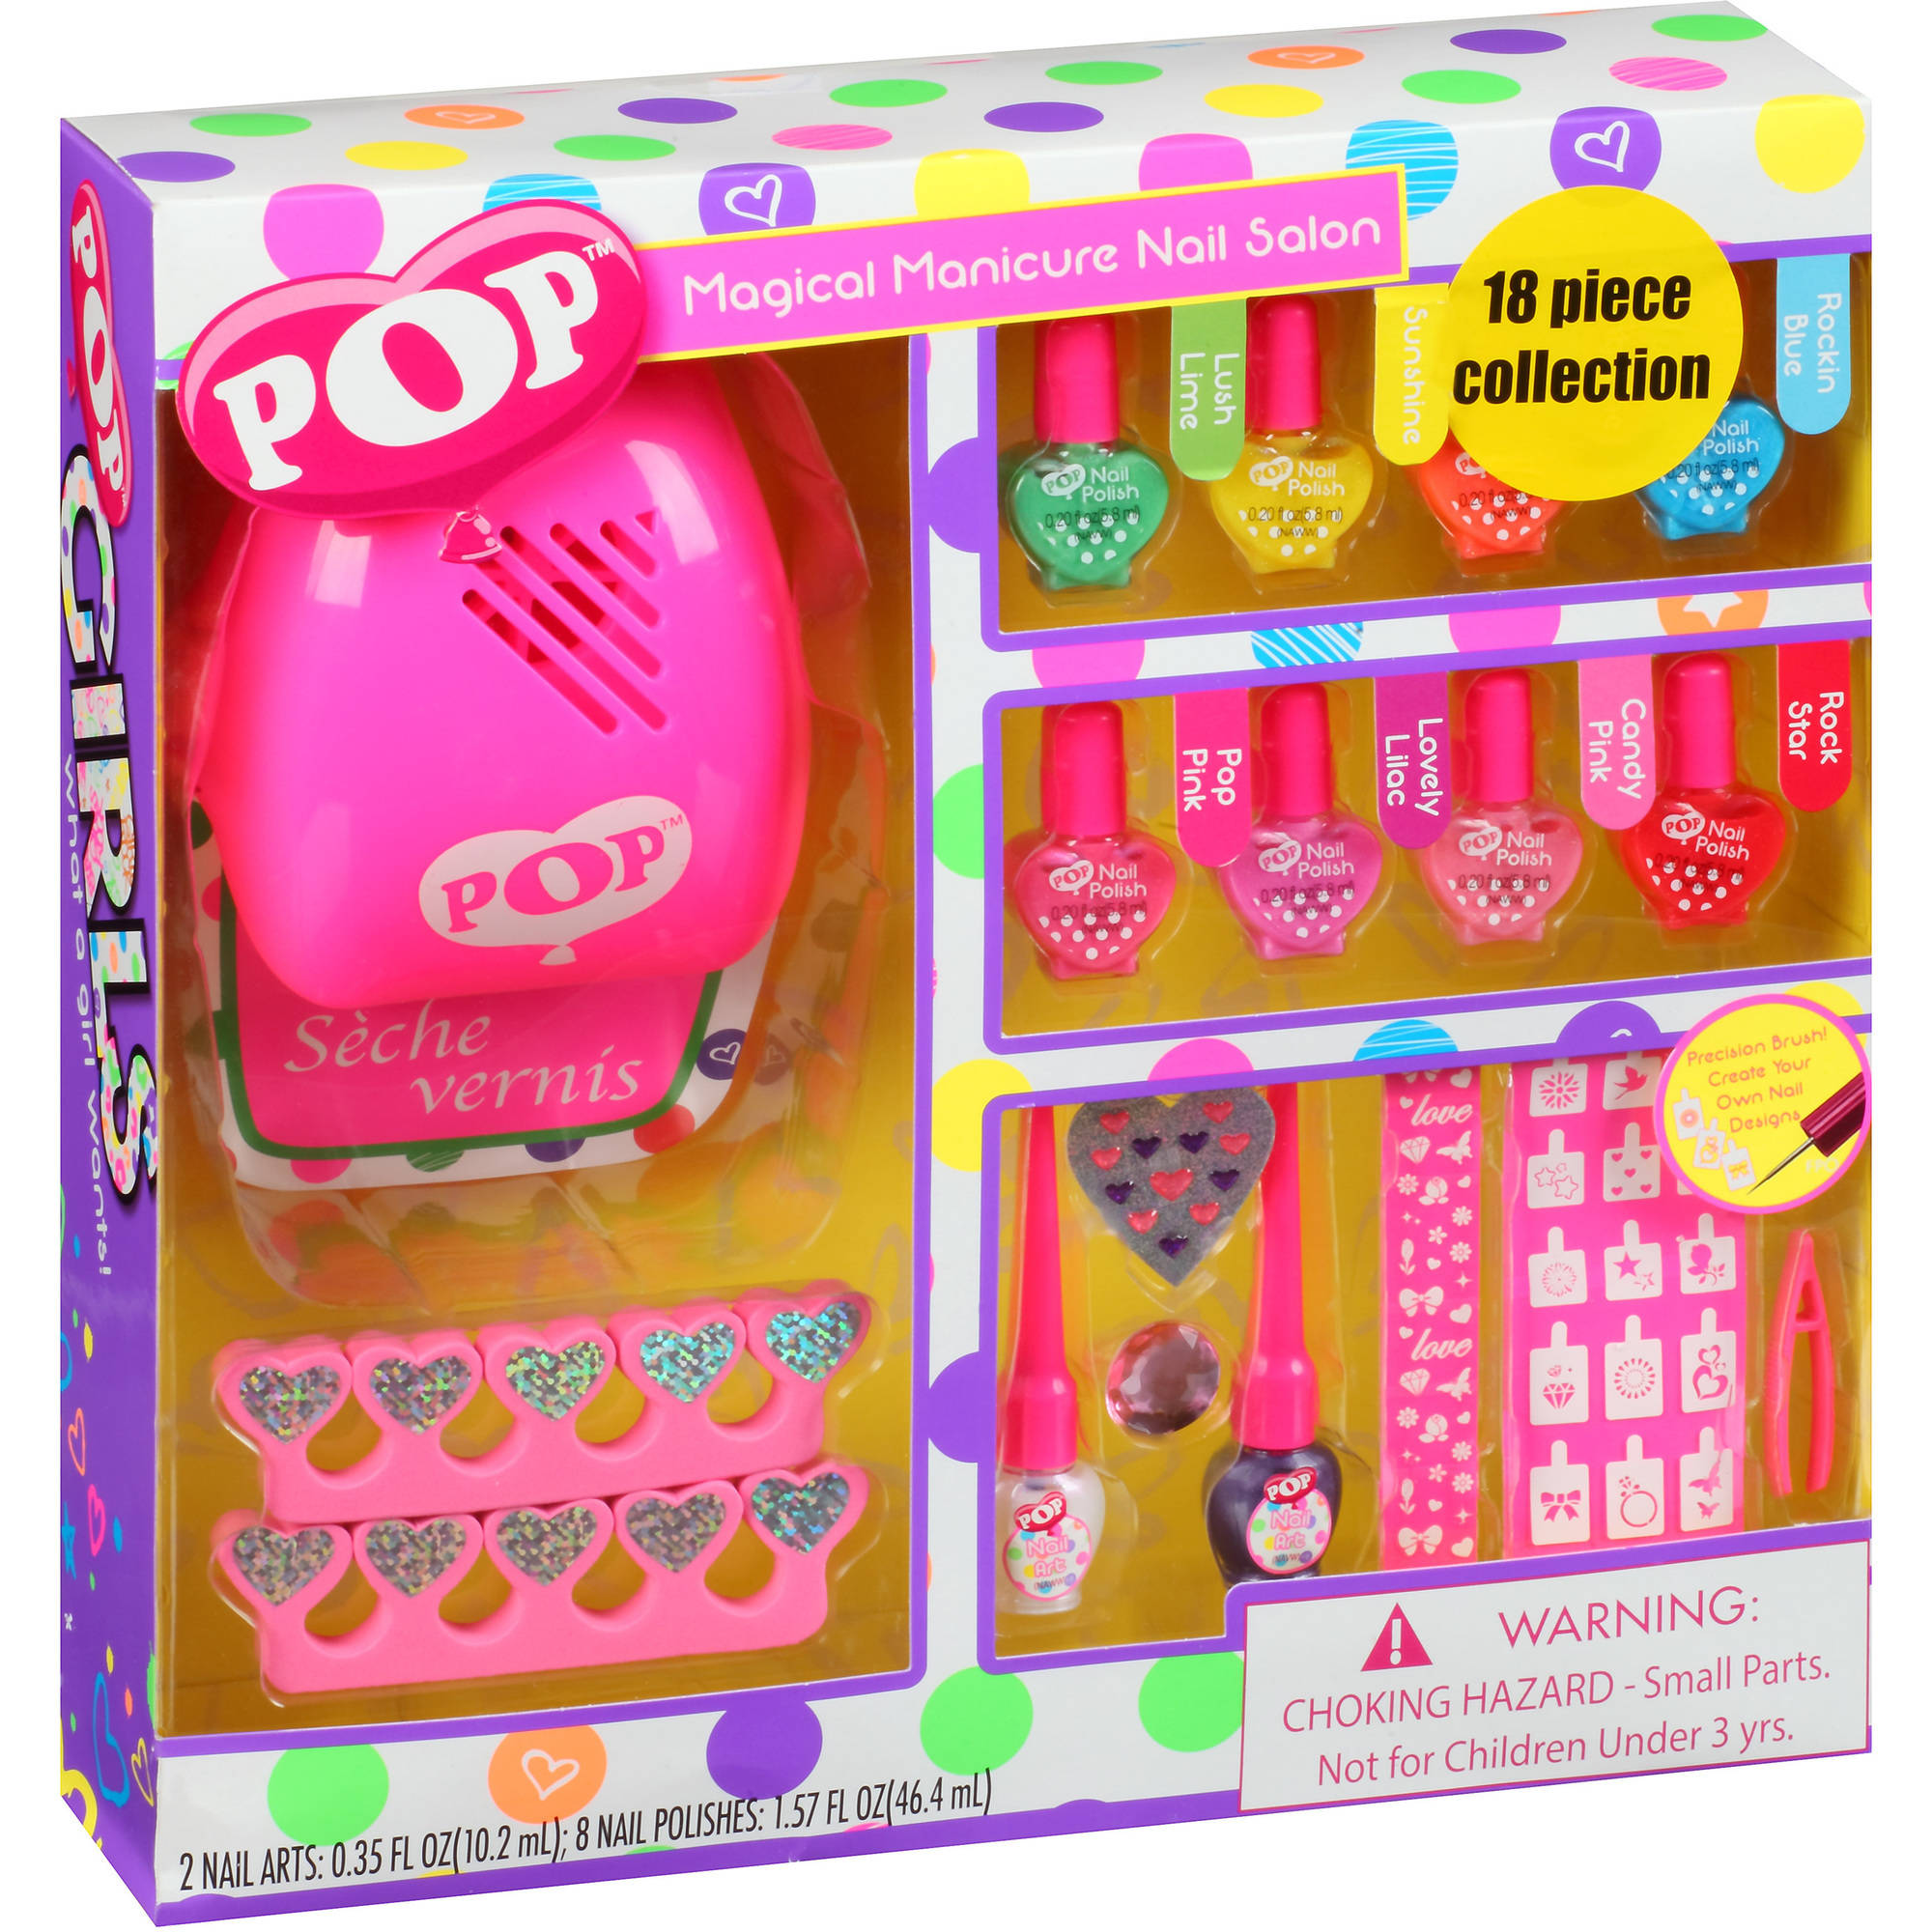 POP Magical Manicure Nail Salon Gift Set, 18 pc